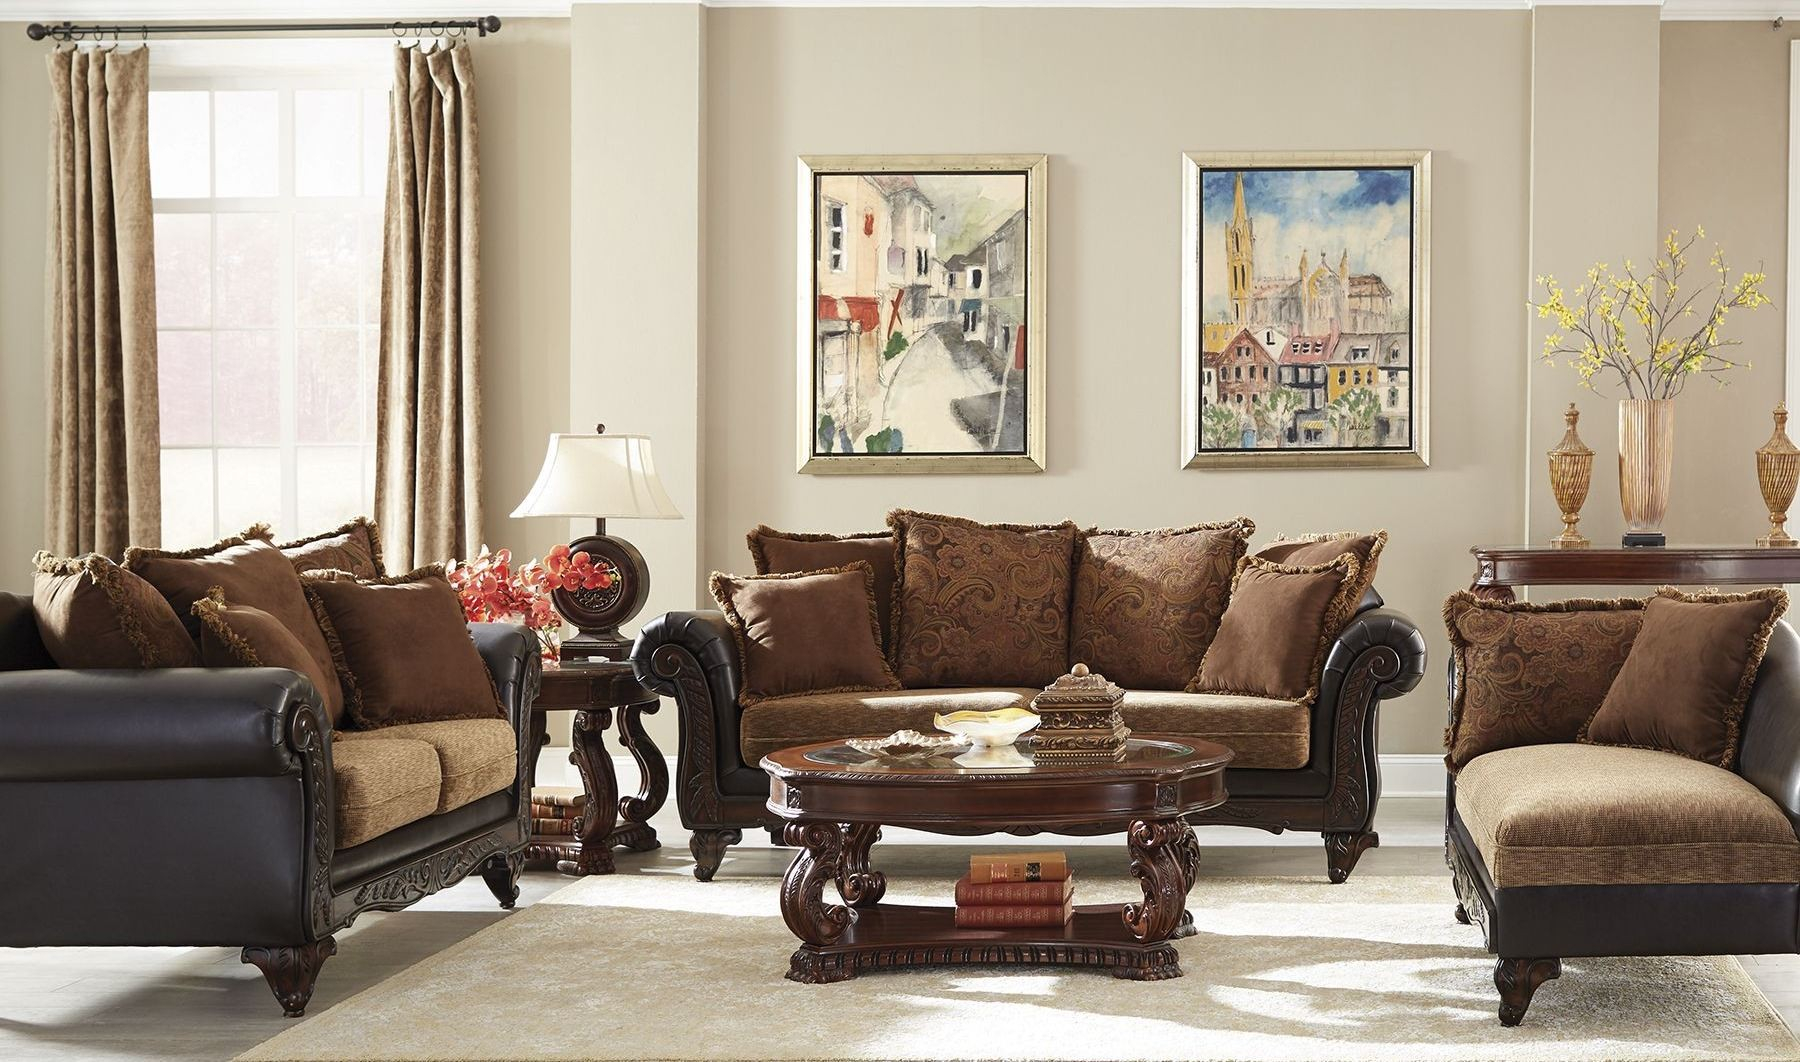 Garroway Russet Chocolate Living Room Set From Coaster Coleman intended for 12 Awesome Concepts of How to Craft Chocolate Living Room Set